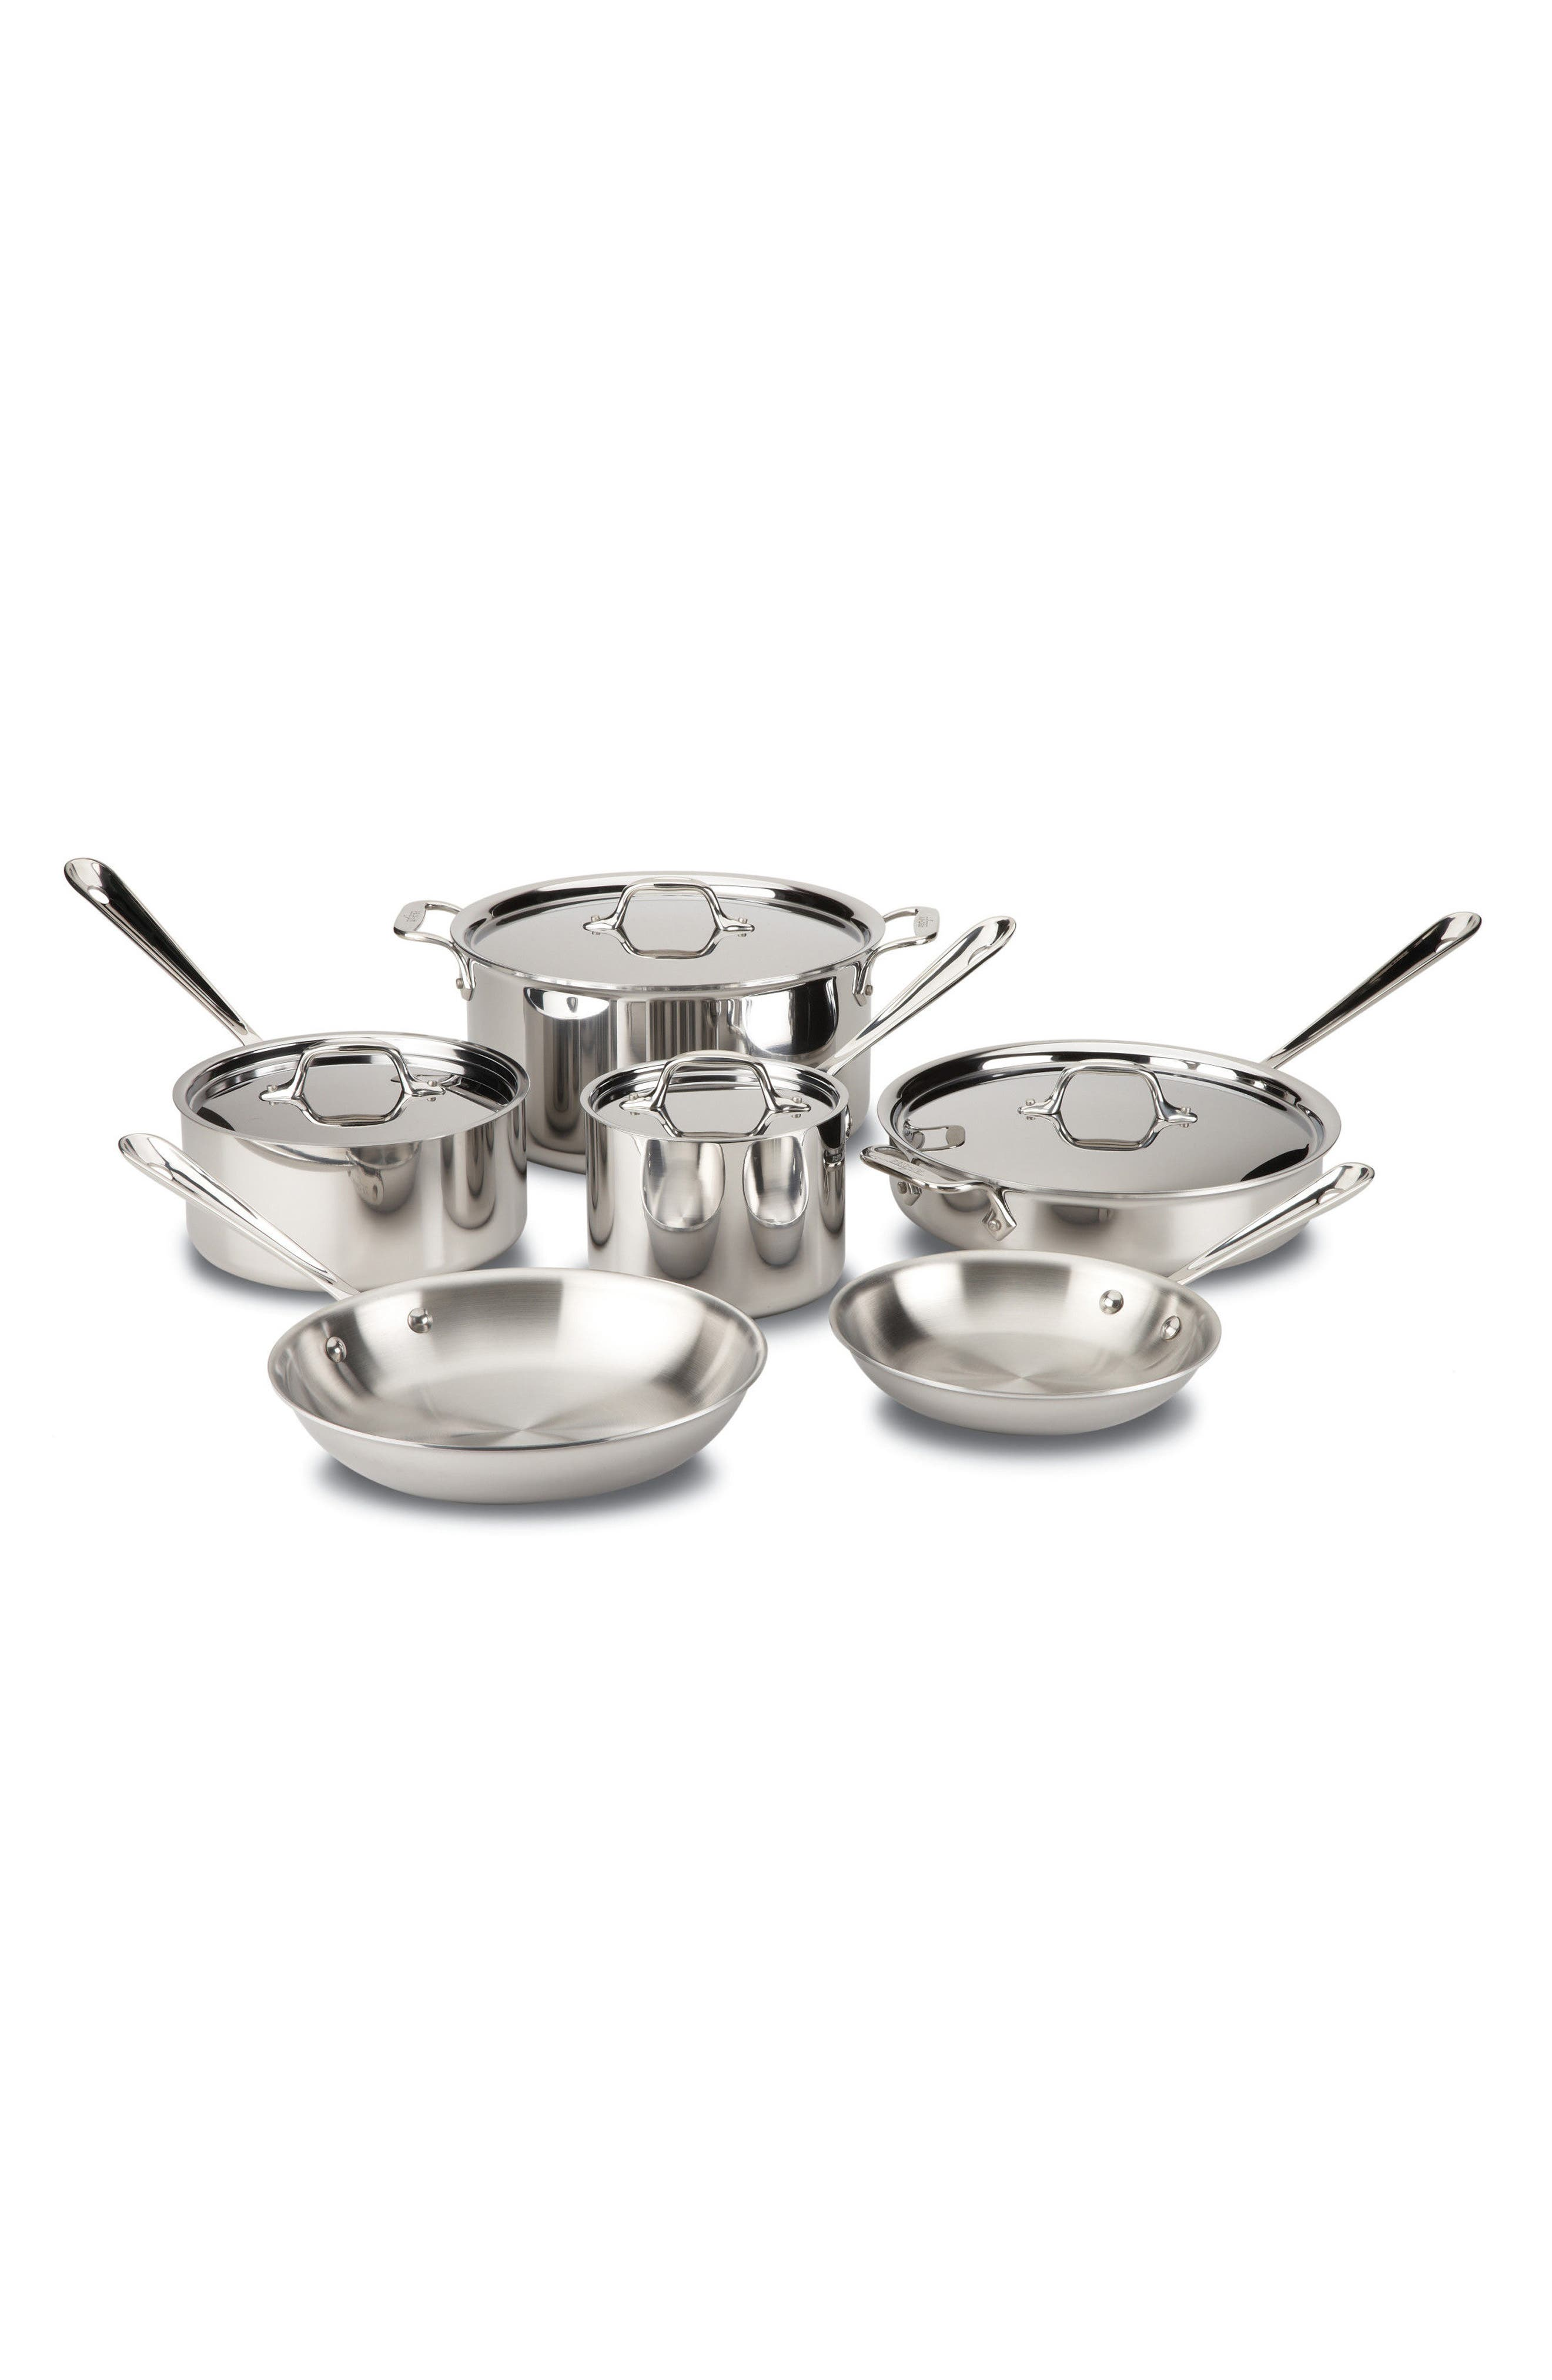 10-Piece Stainless Steel Cookware Set,                         Main,                         color, STAINLESS